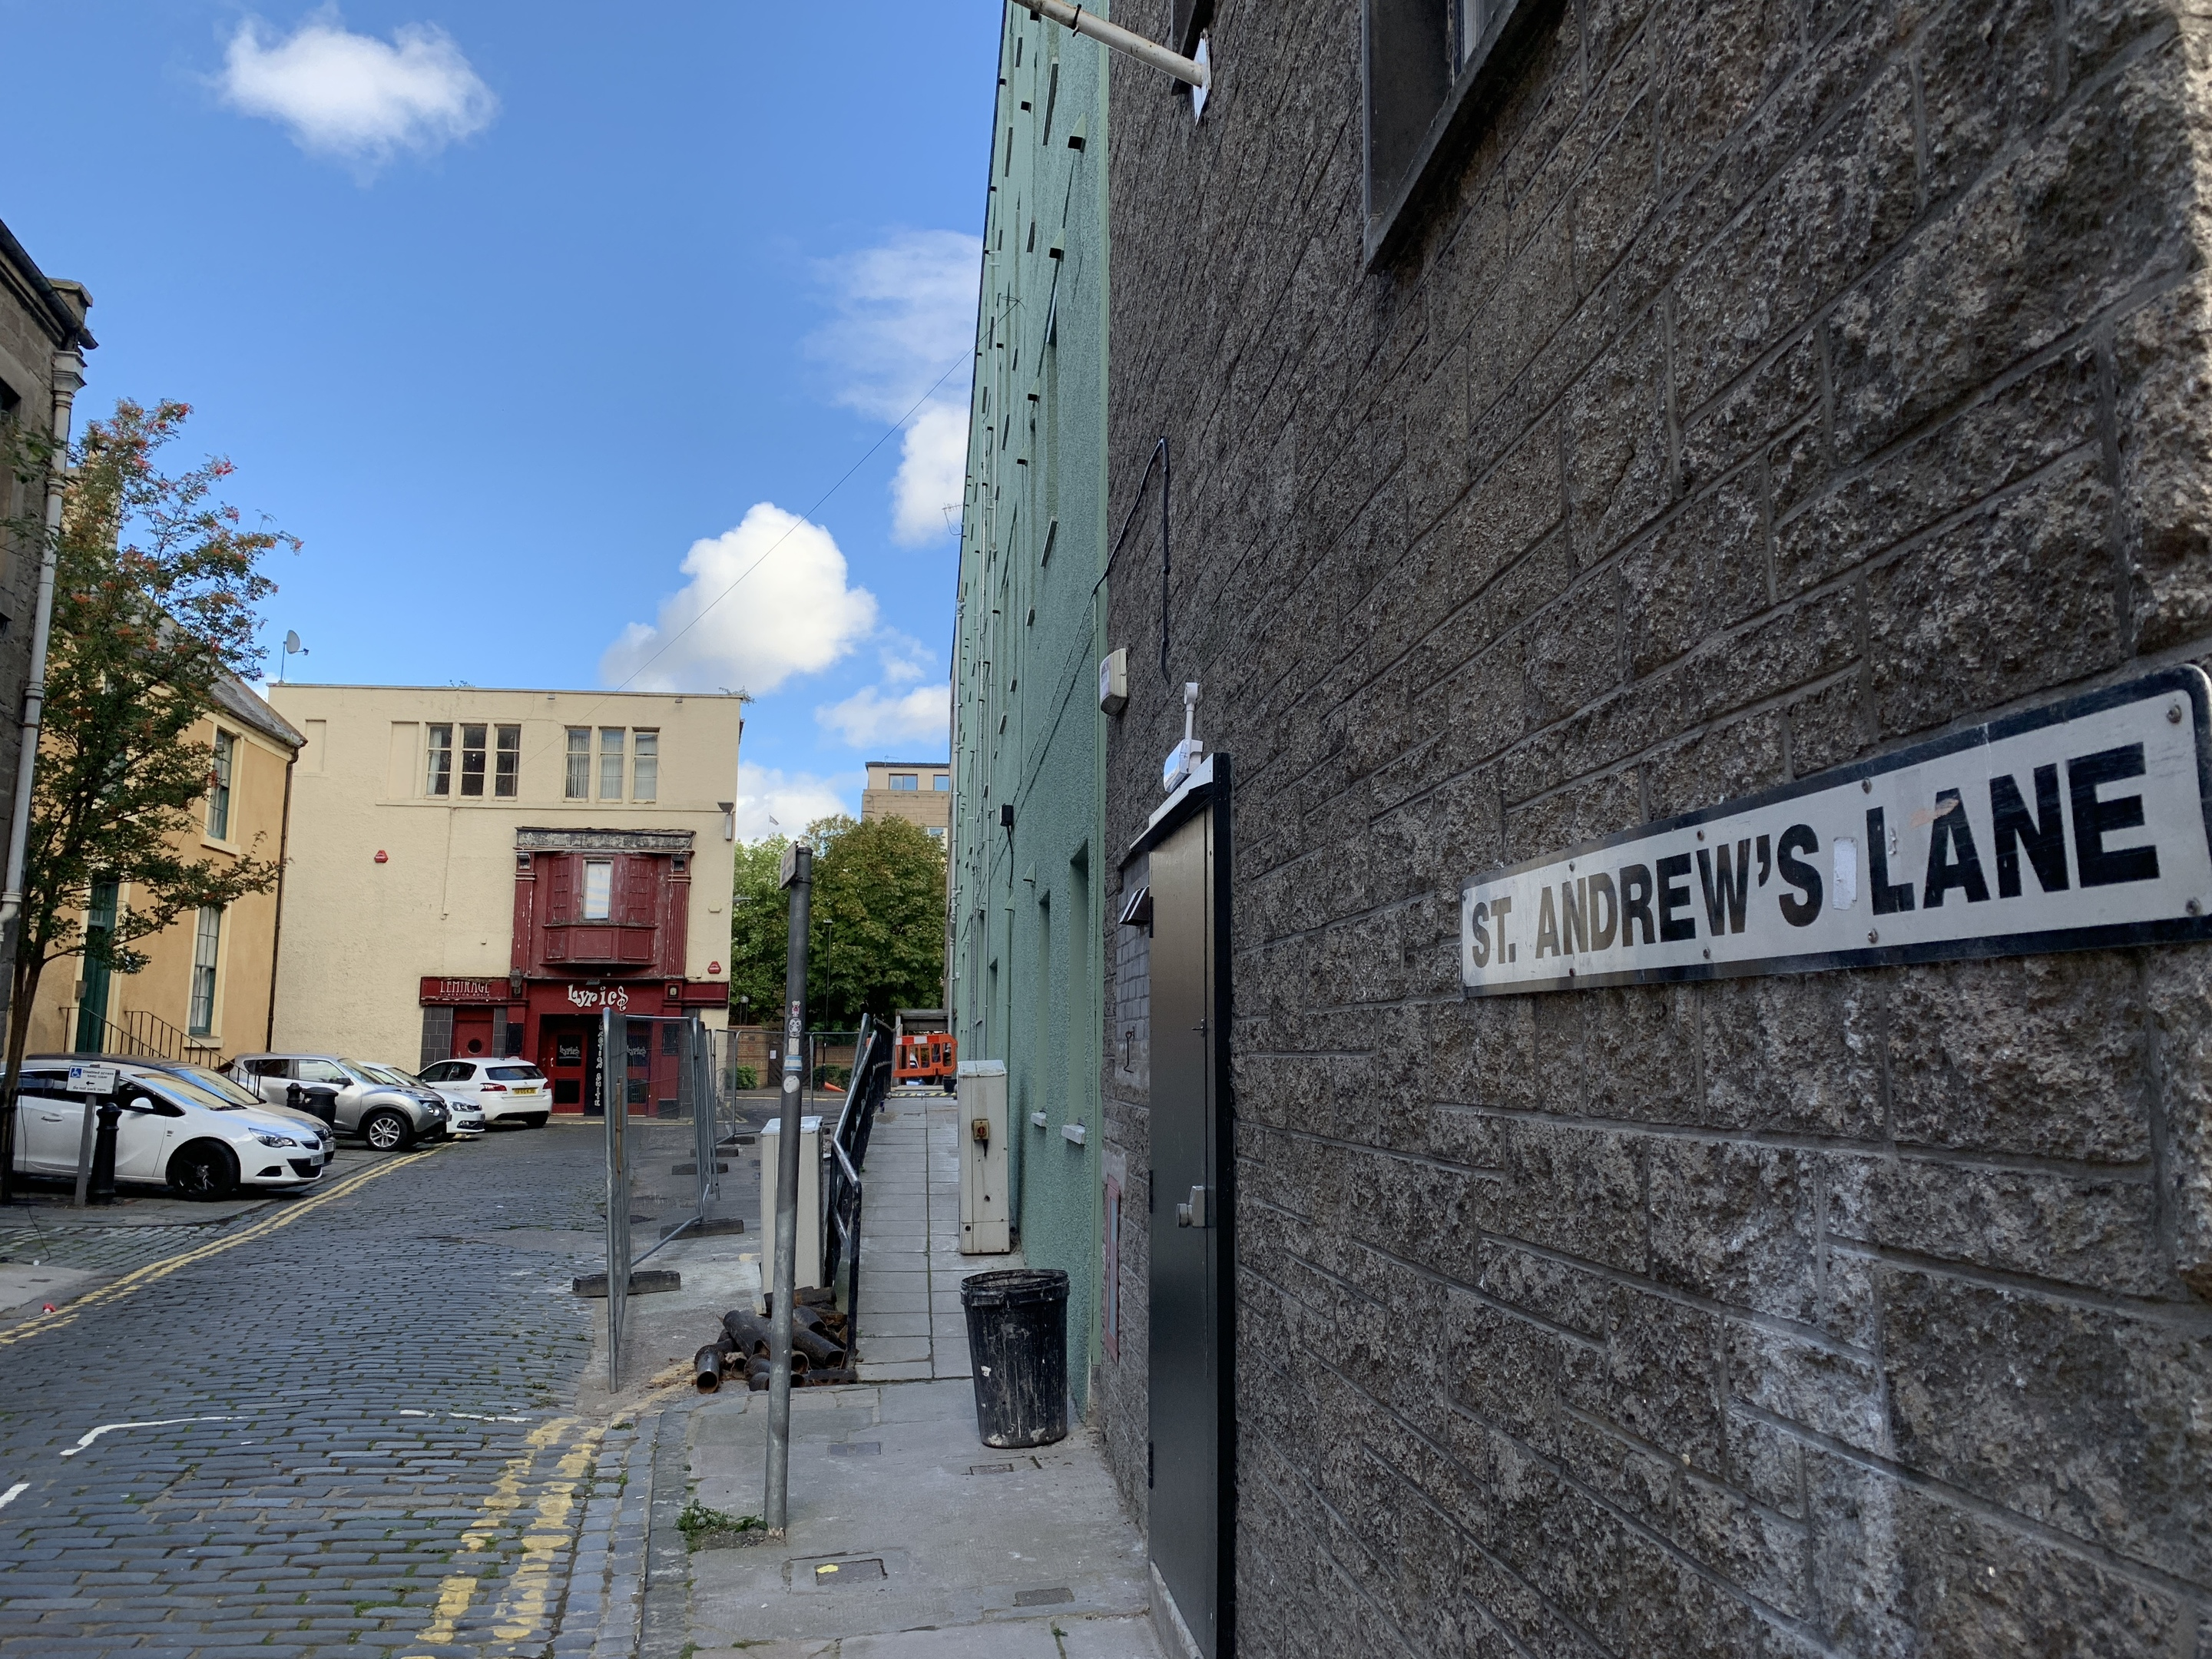 St Andrews Lane, off St Andrews Street, in Dundee city centre (stock image)